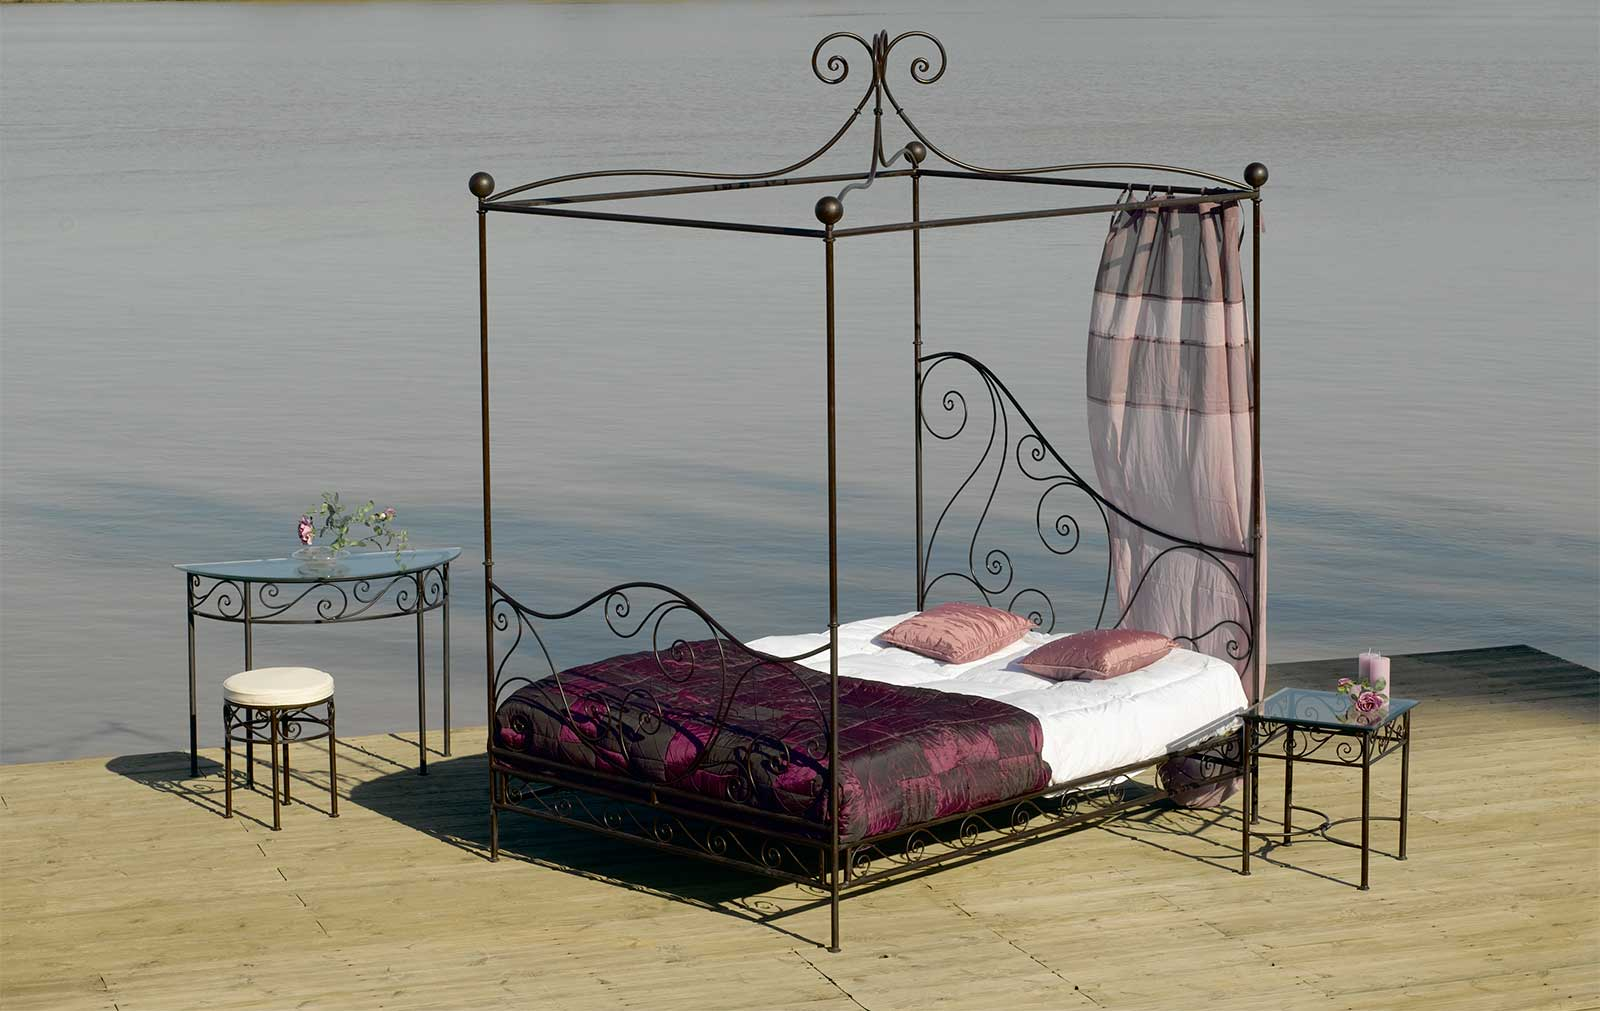 lit baldaquin le cocoon de votre sommeil. Black Bedroom Furniture Sets. Home Design Ideas